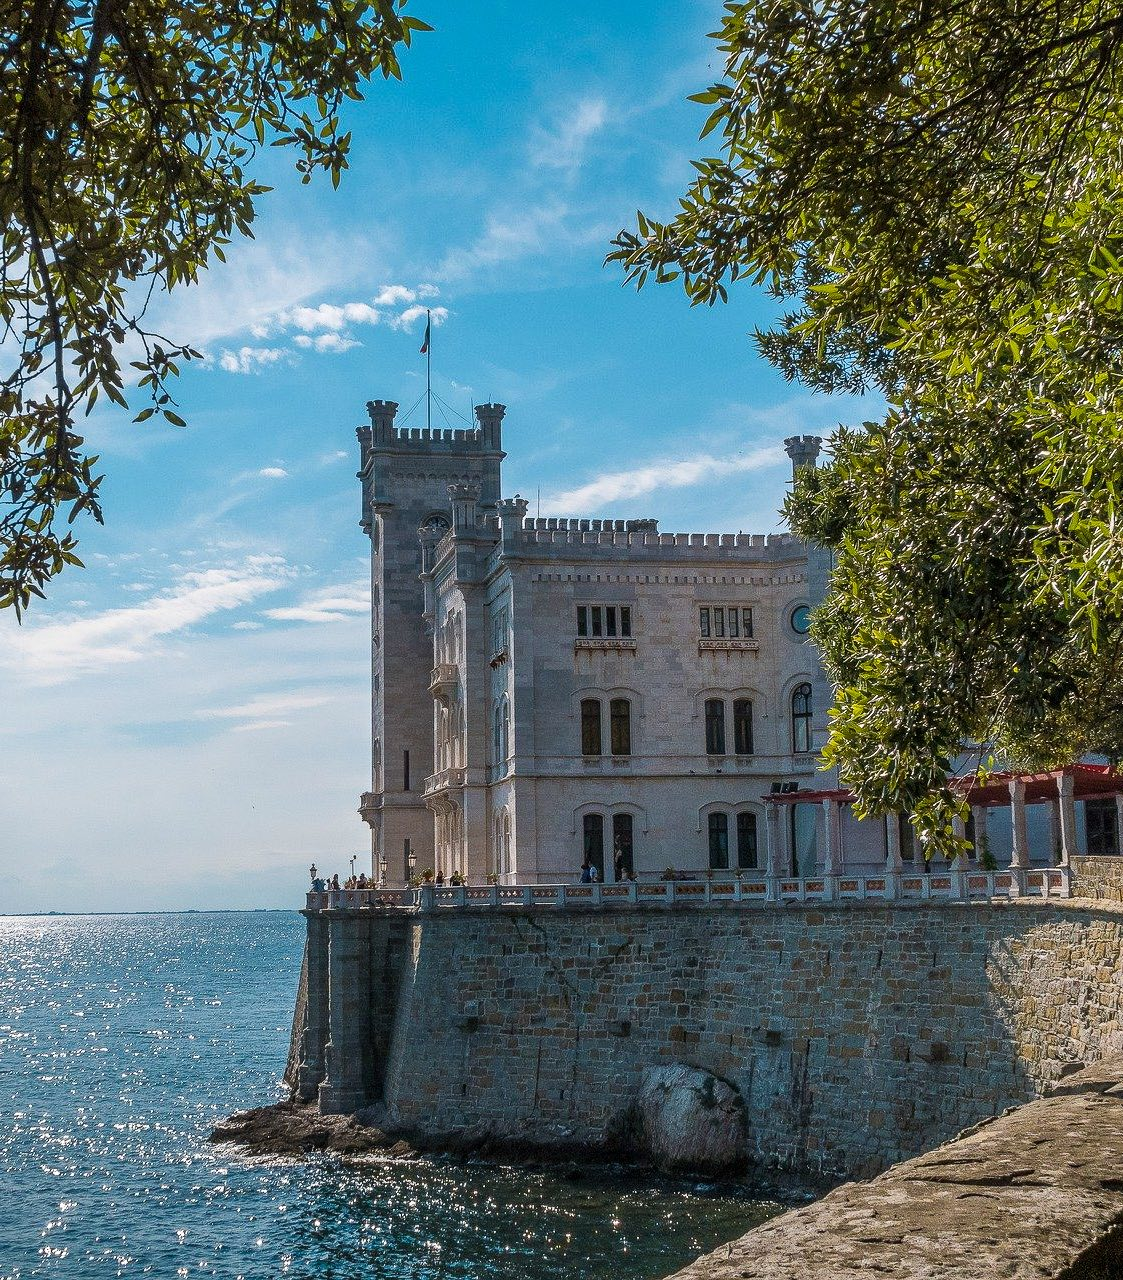 The castle of Trieste